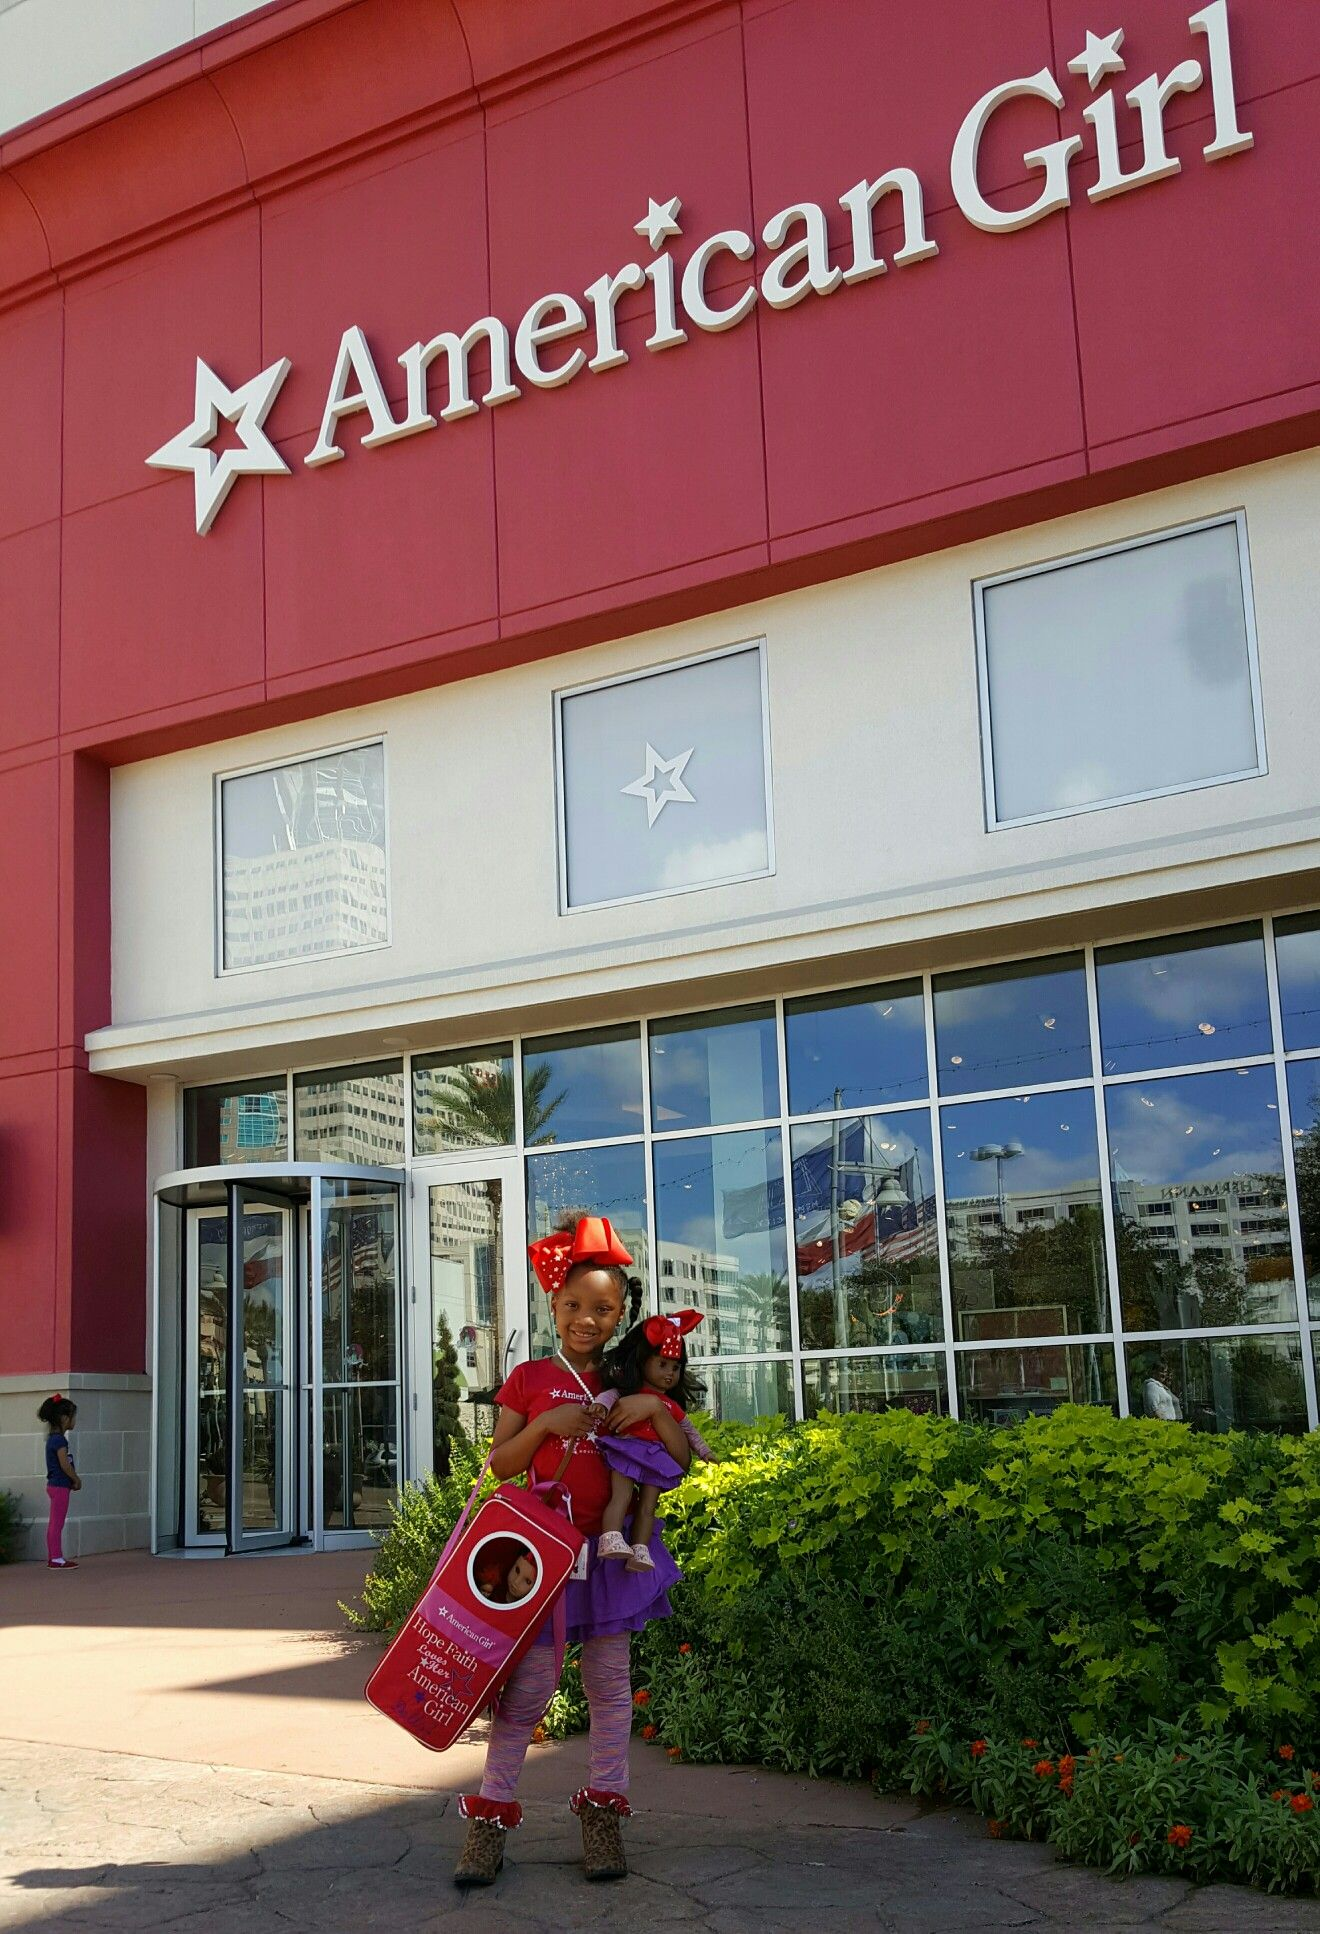 Heading inside to some excitement forsure, today is my scheduled MeetUp with other American Girl Fans like Me. @americangirlbrand #americangirlbrand